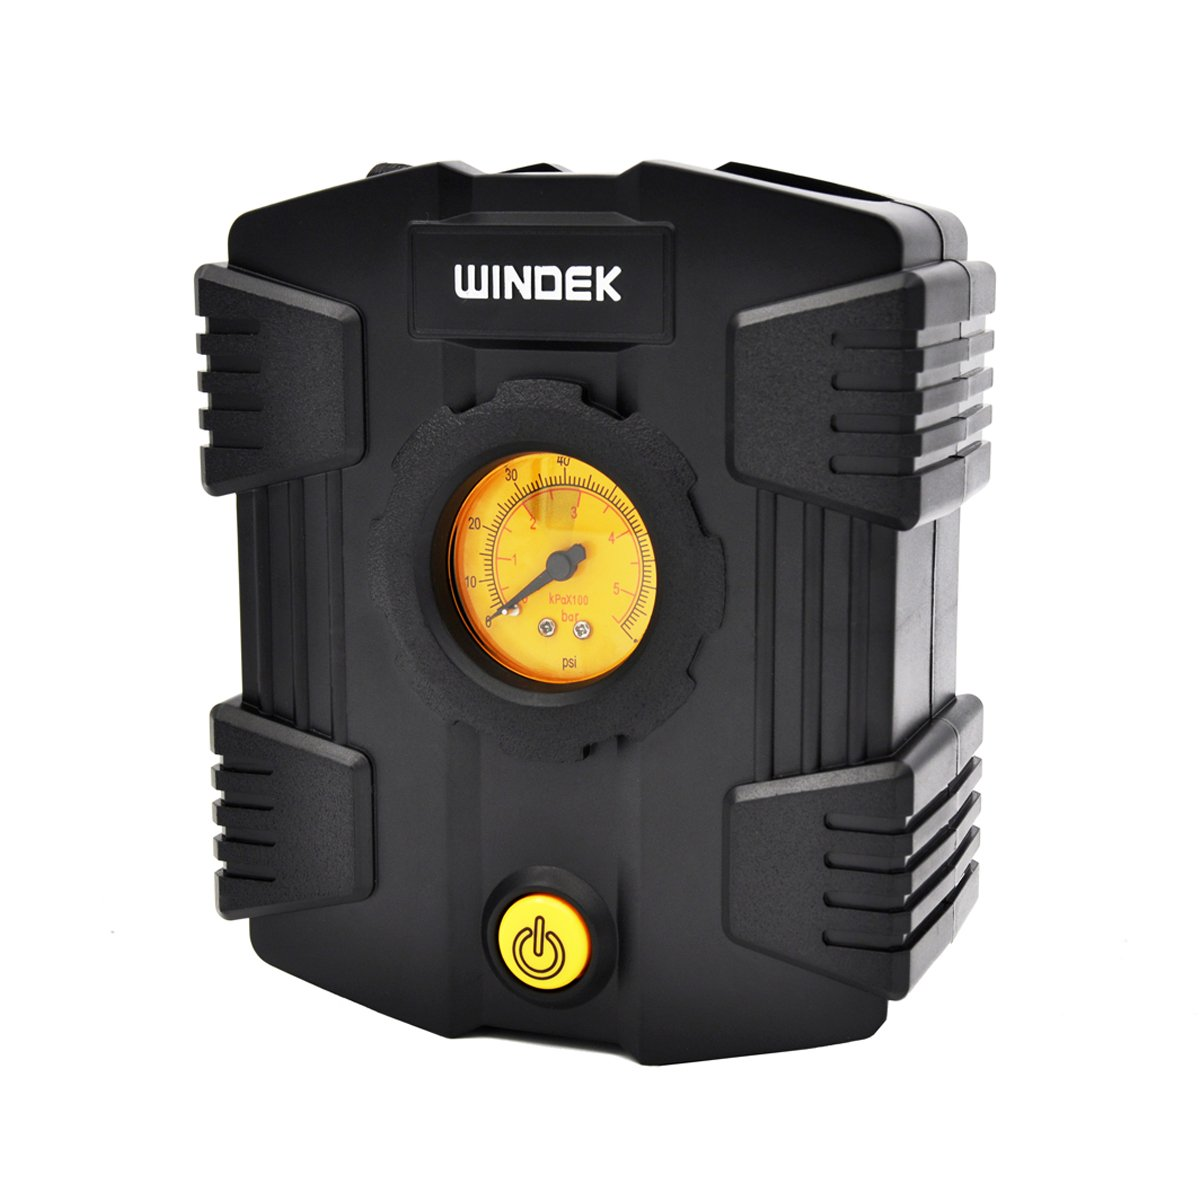 Amazon.com: Windek D06B 80PSI 12V Mini Tire Inflator/Air Compressor with Pressure Gauge and Adaptor Set: Automotive